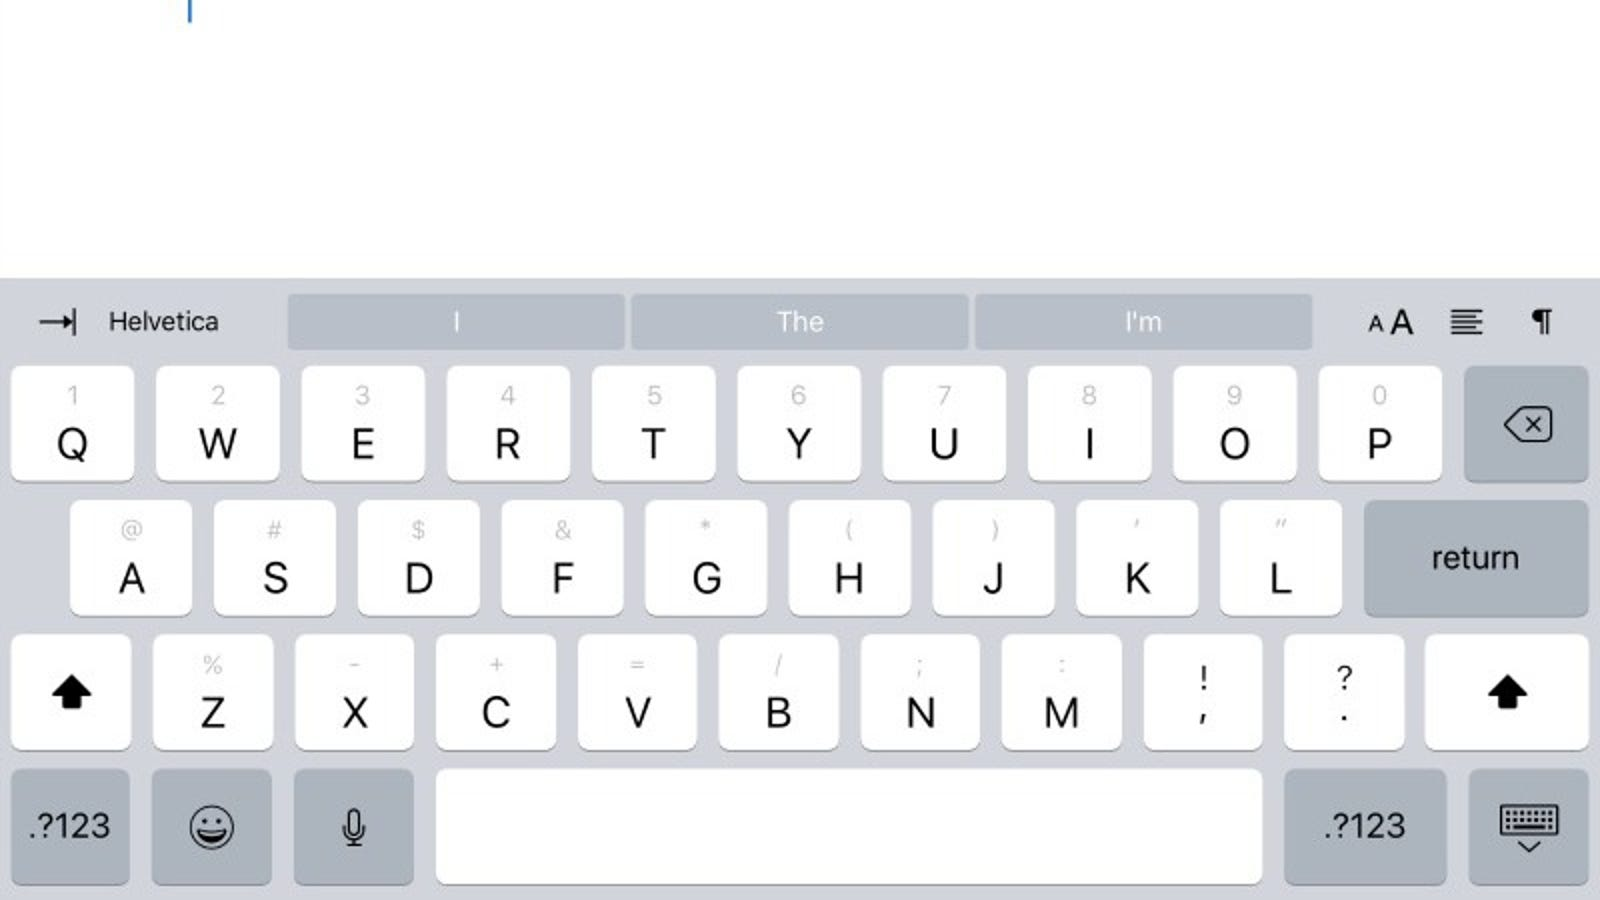 How To Use Ios 11s New Ipad Keyboard And Uninstall It If You Hate It